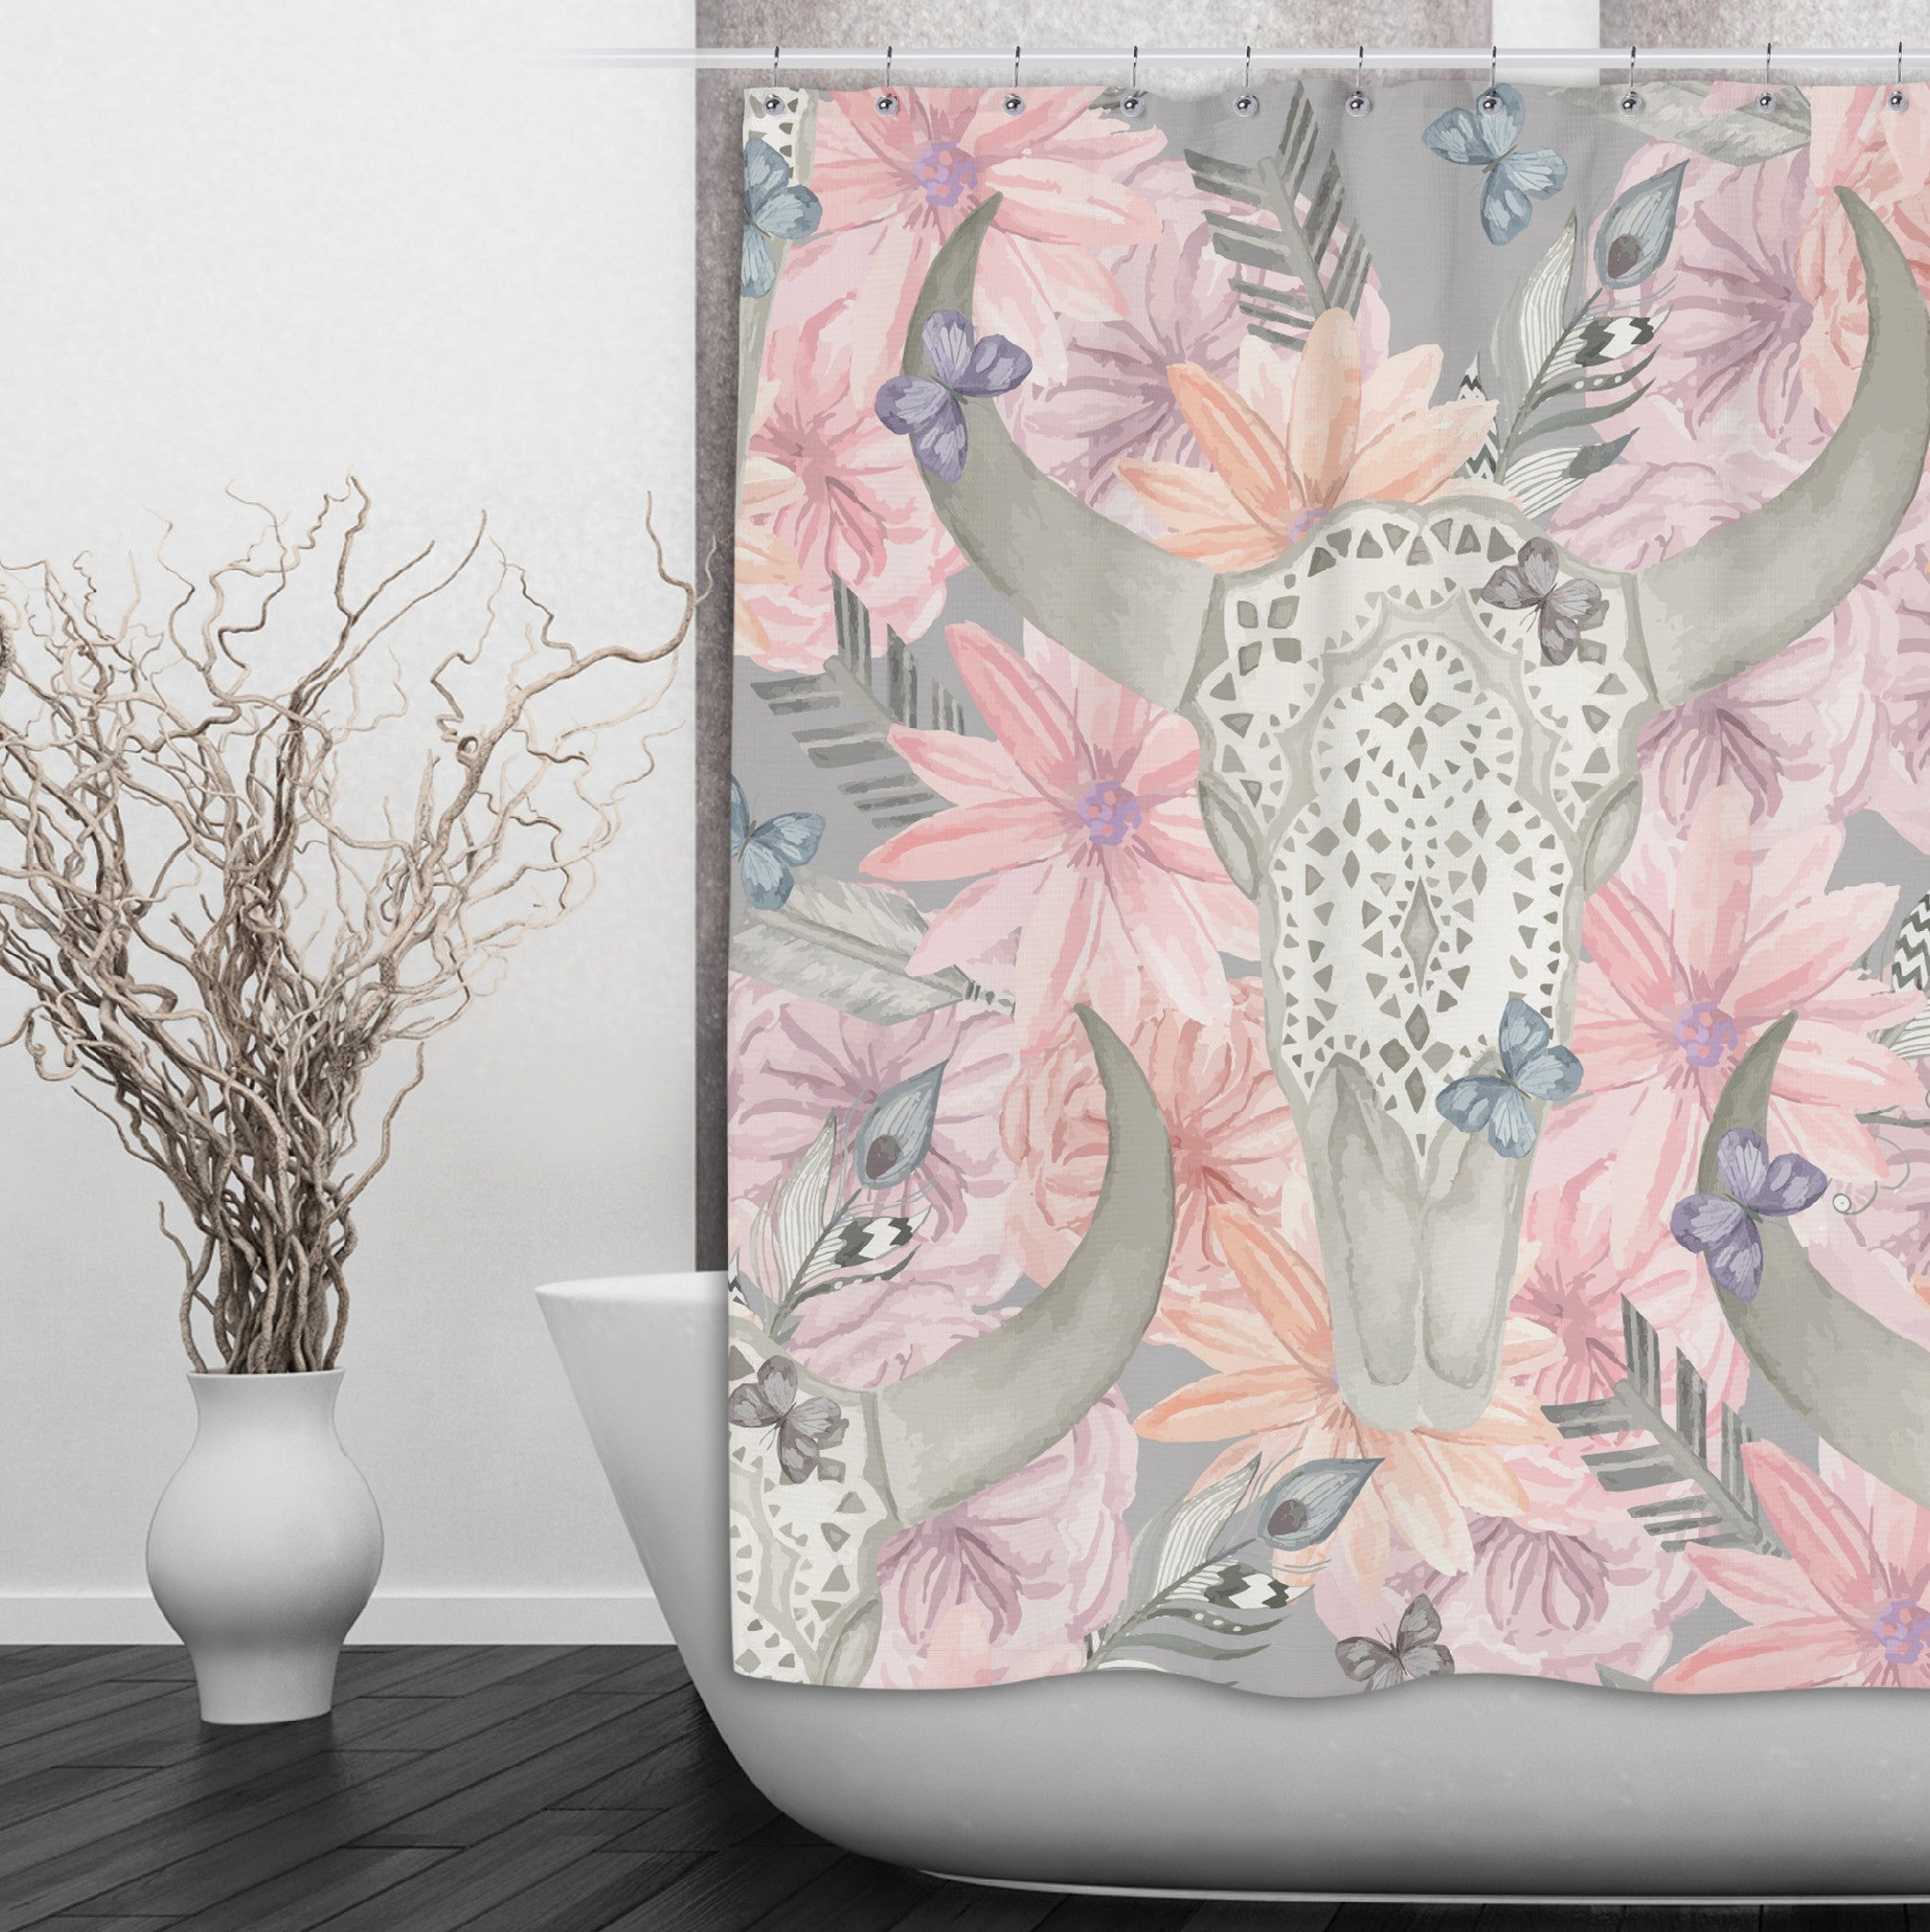 Skull Bedroom Curtains Longhorn Skull Shower Curtain With Lace And Pink Flowers Ink And